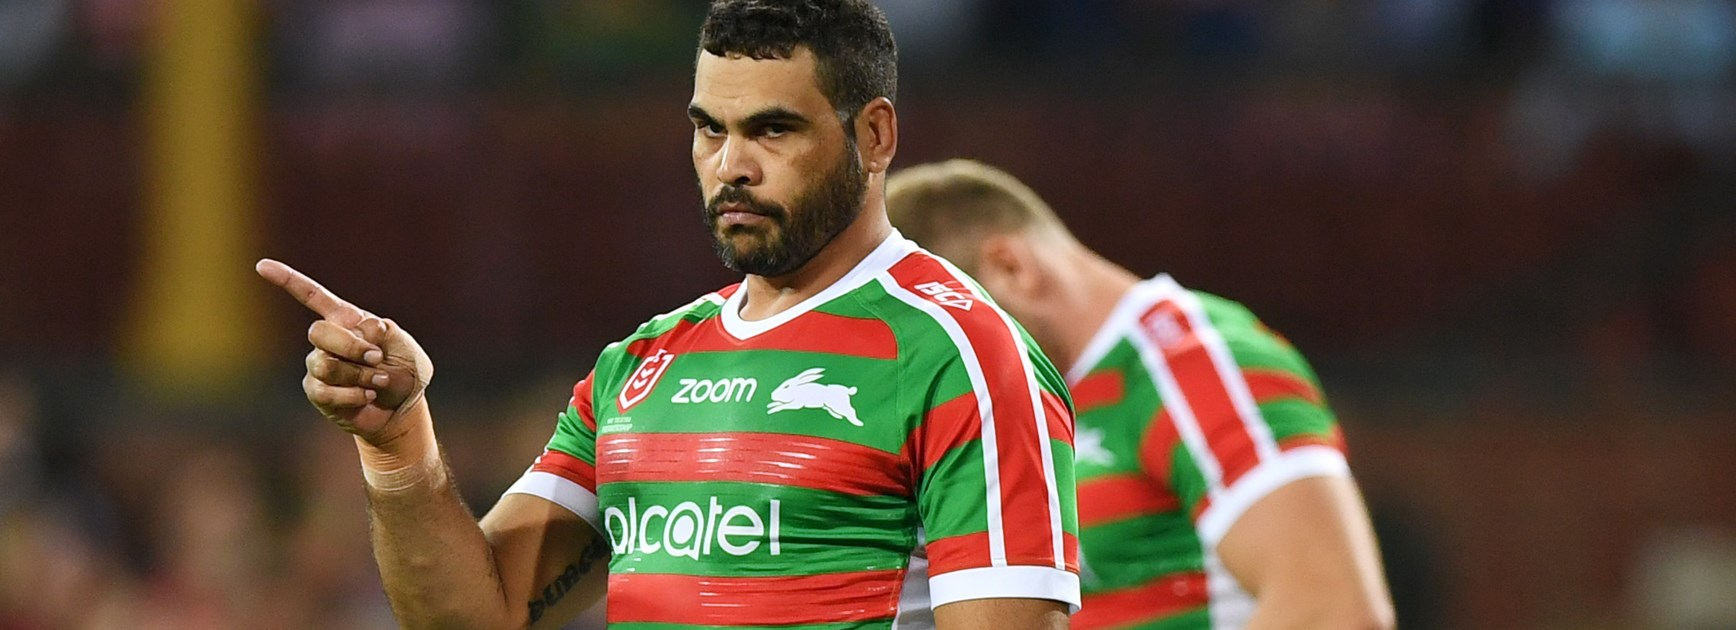 Inglis granted a week's leave by South Sydney